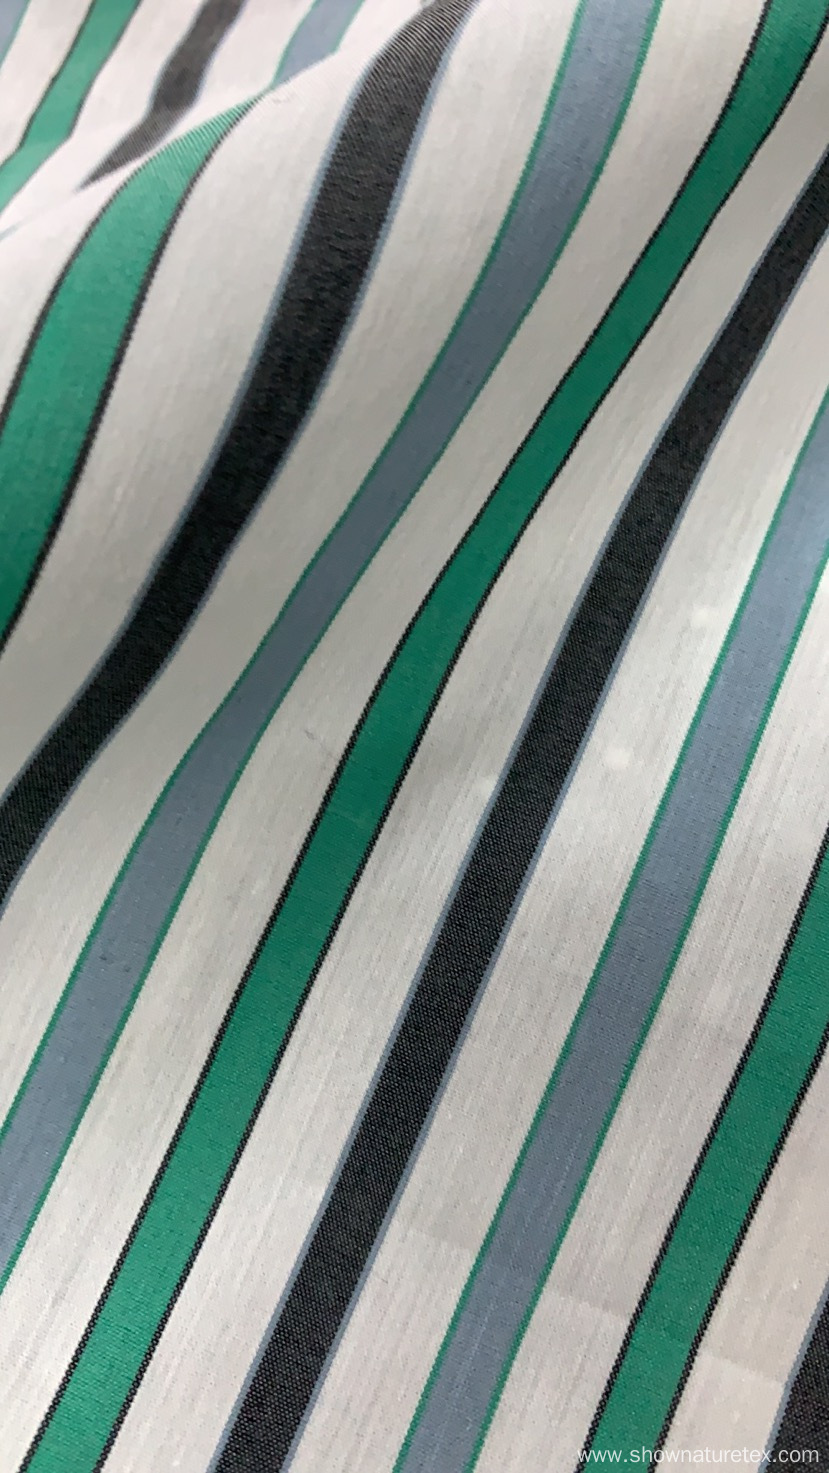 Cotton NYlon Stripes and Checks Fabric